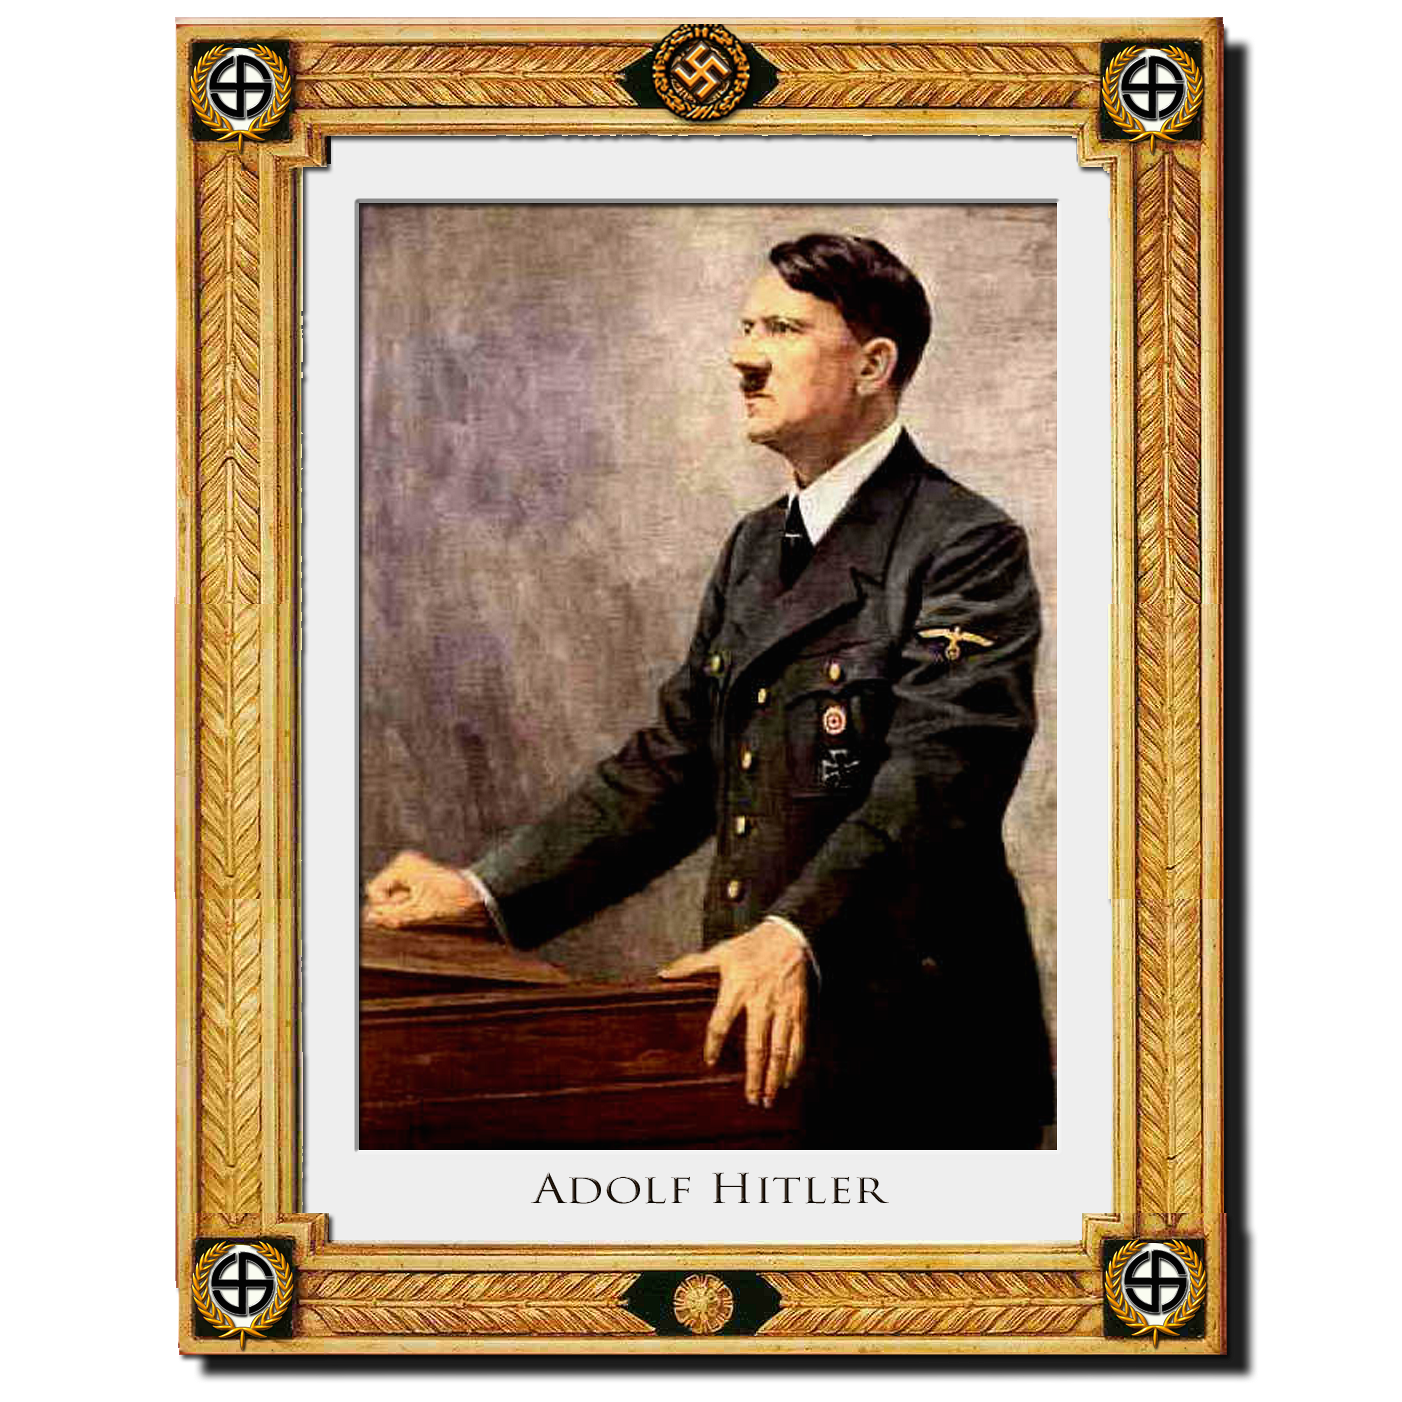 adolf hitler, the occult history the third reich the enigma #26665